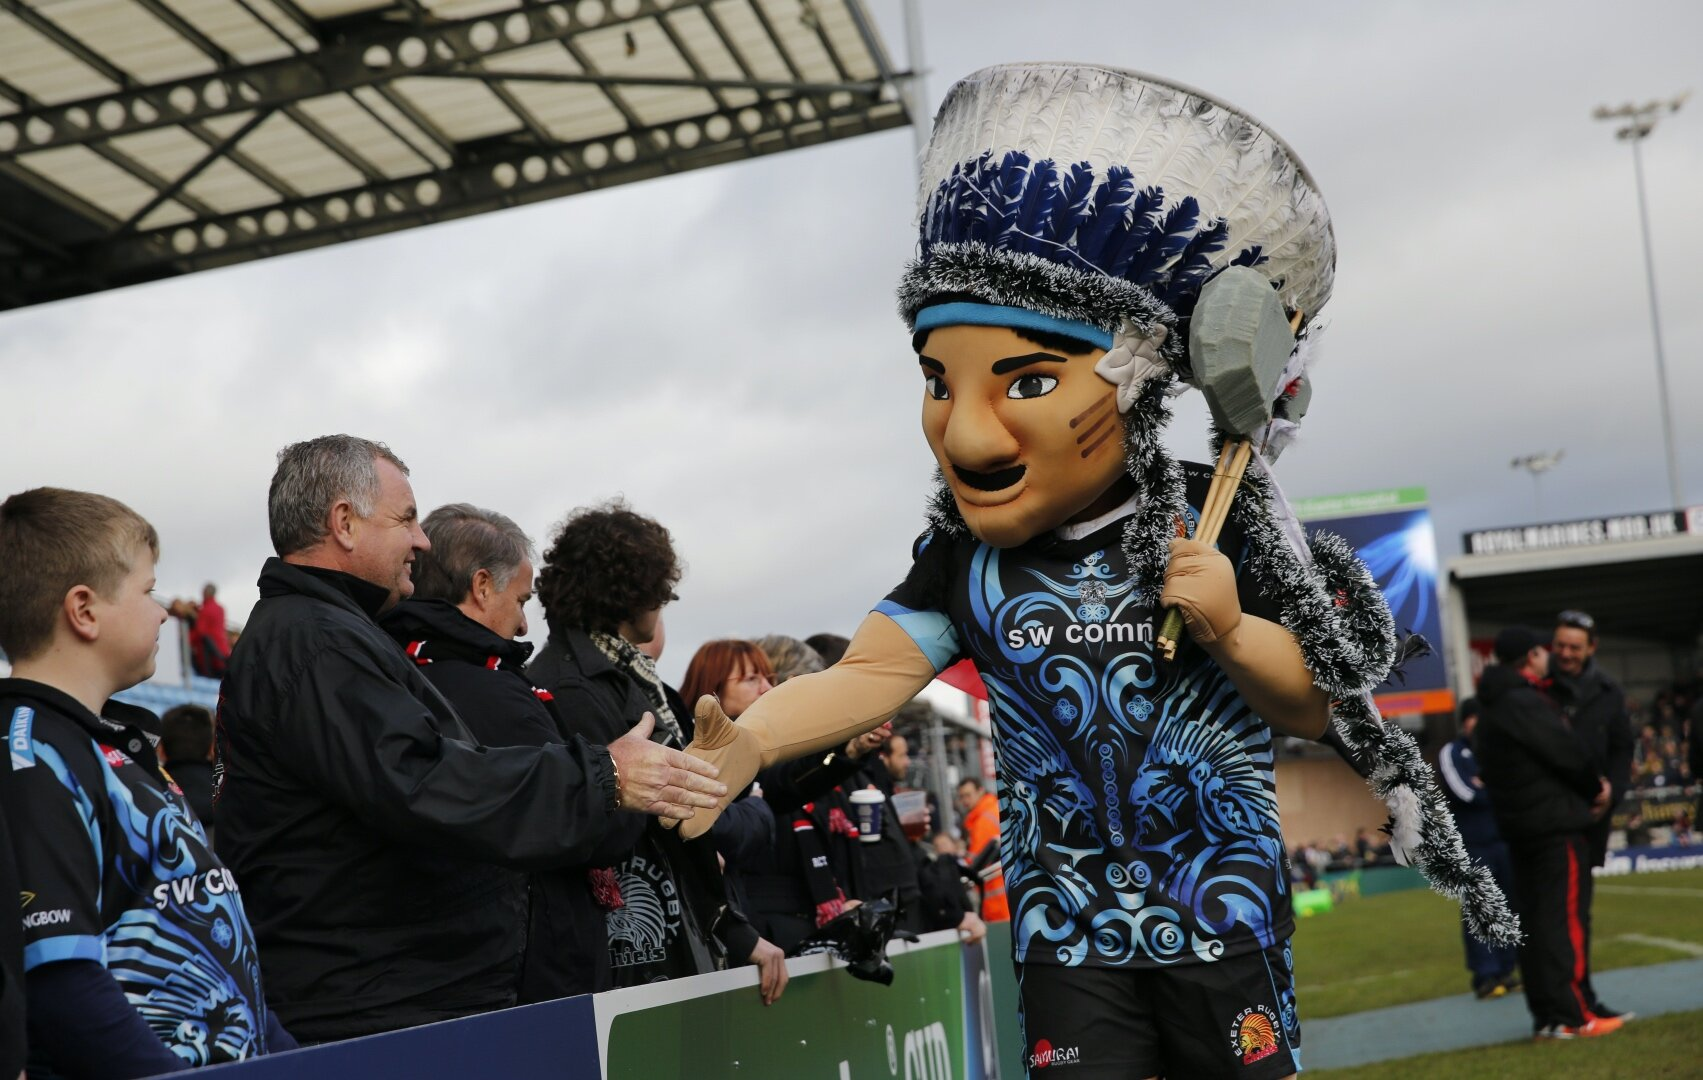 Exeter Chiefs' iconic chant to be left out by BT Sport fake crowd noise for Rugby Restart